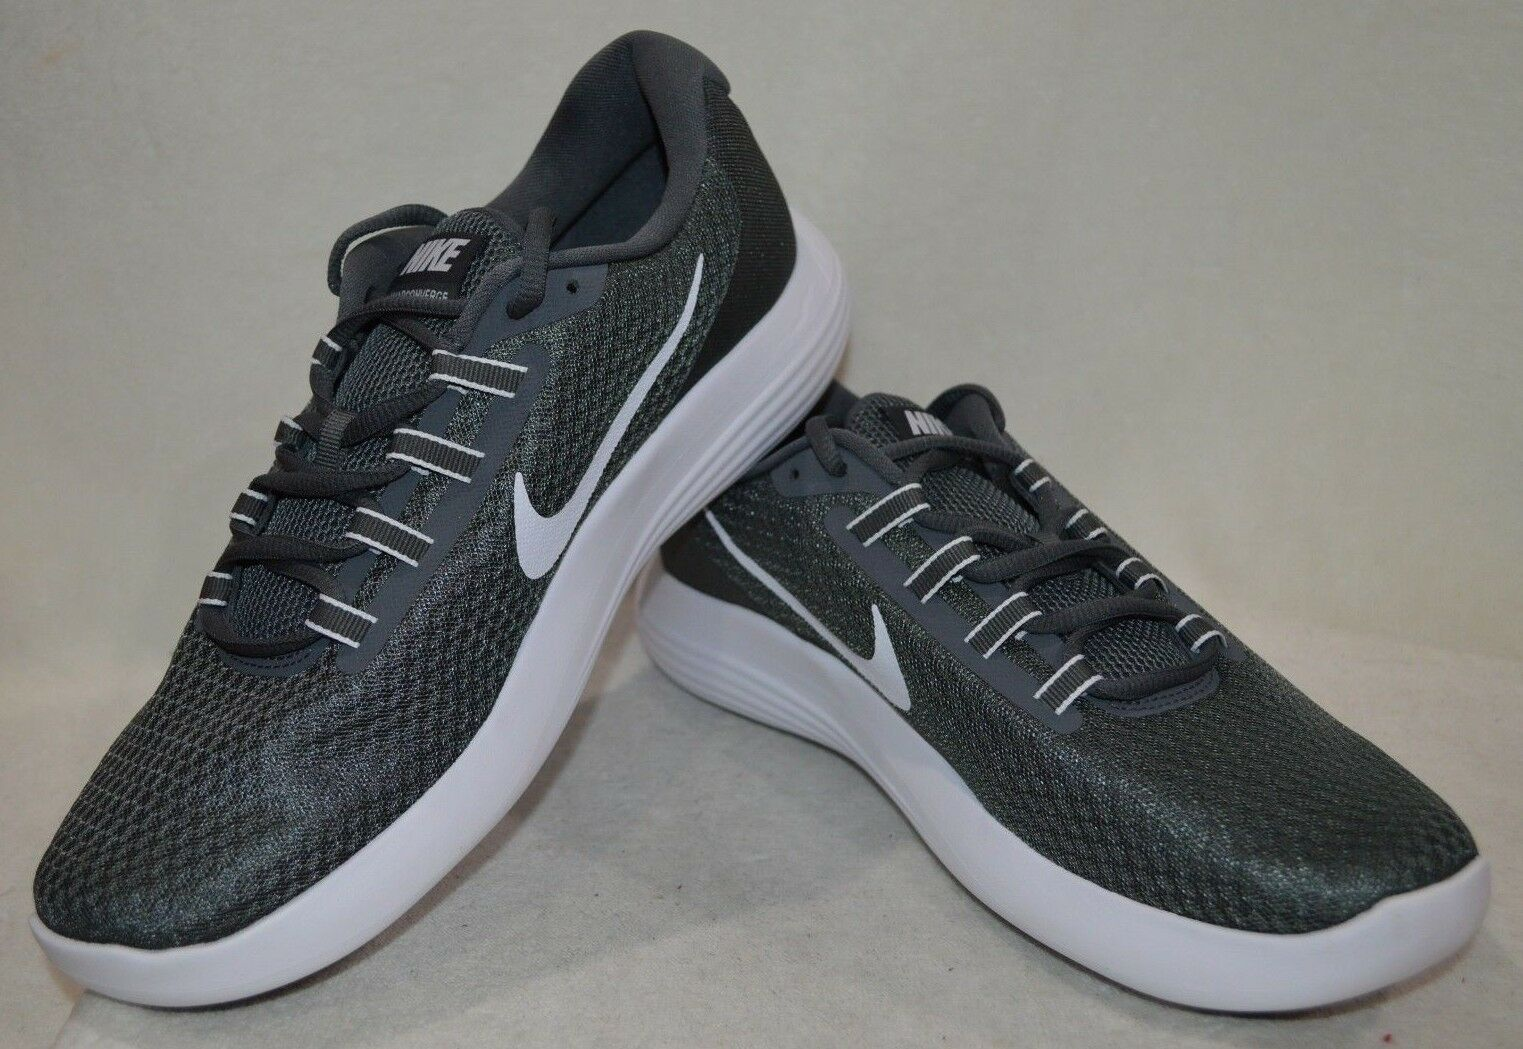 Nike Lunarconverge Grey White Anthracite Men's Running shoes-Assorted Sizes NWB